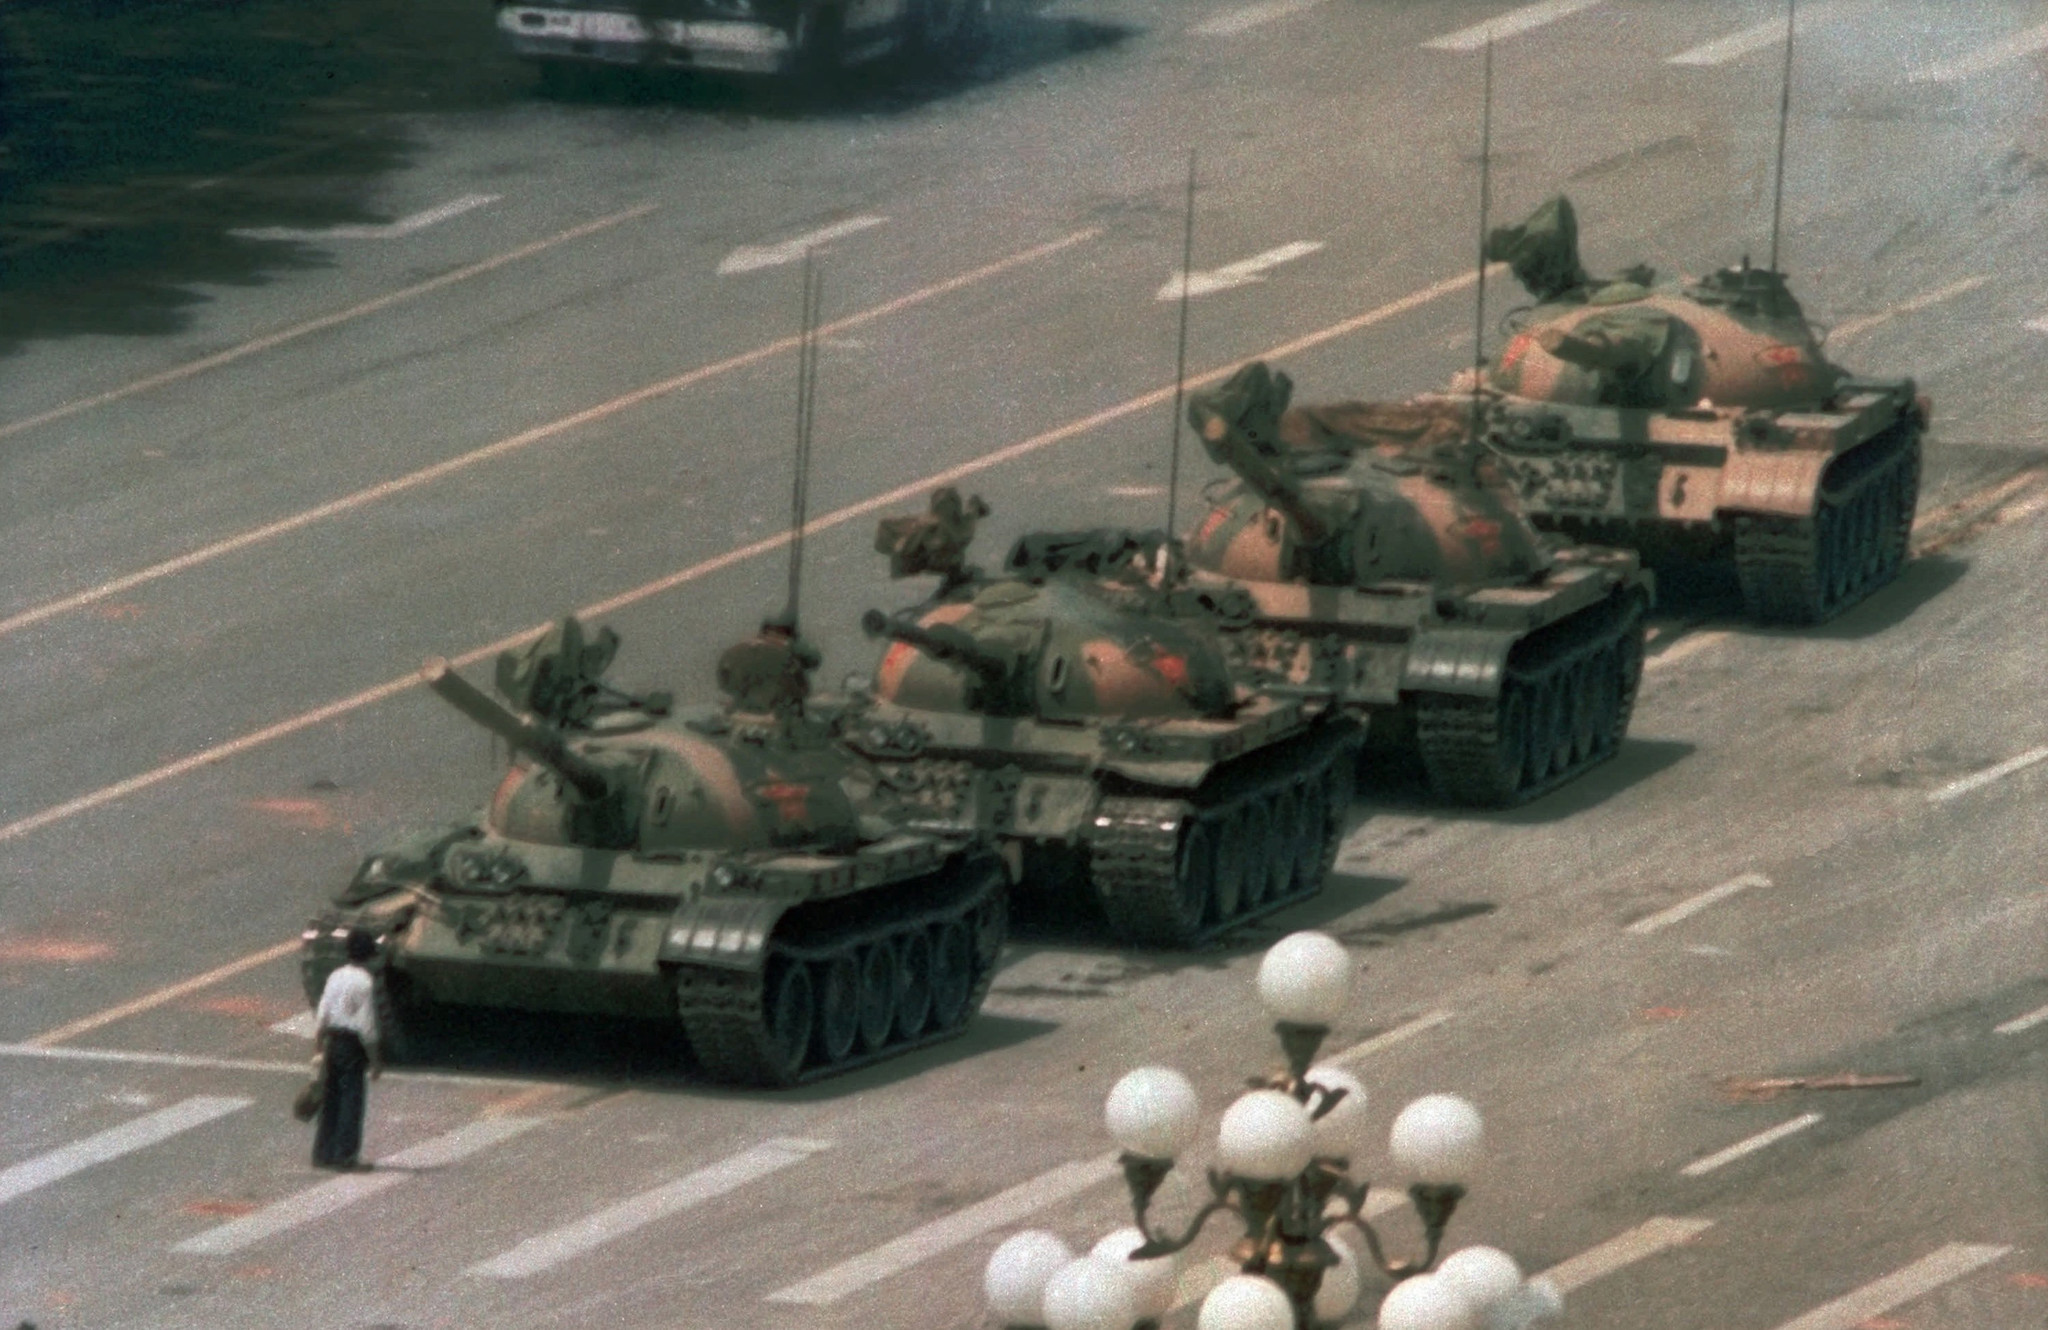 Photographer Charlie Cole — best known for his iconic 1989 Tiananmen Square protest photo — has died